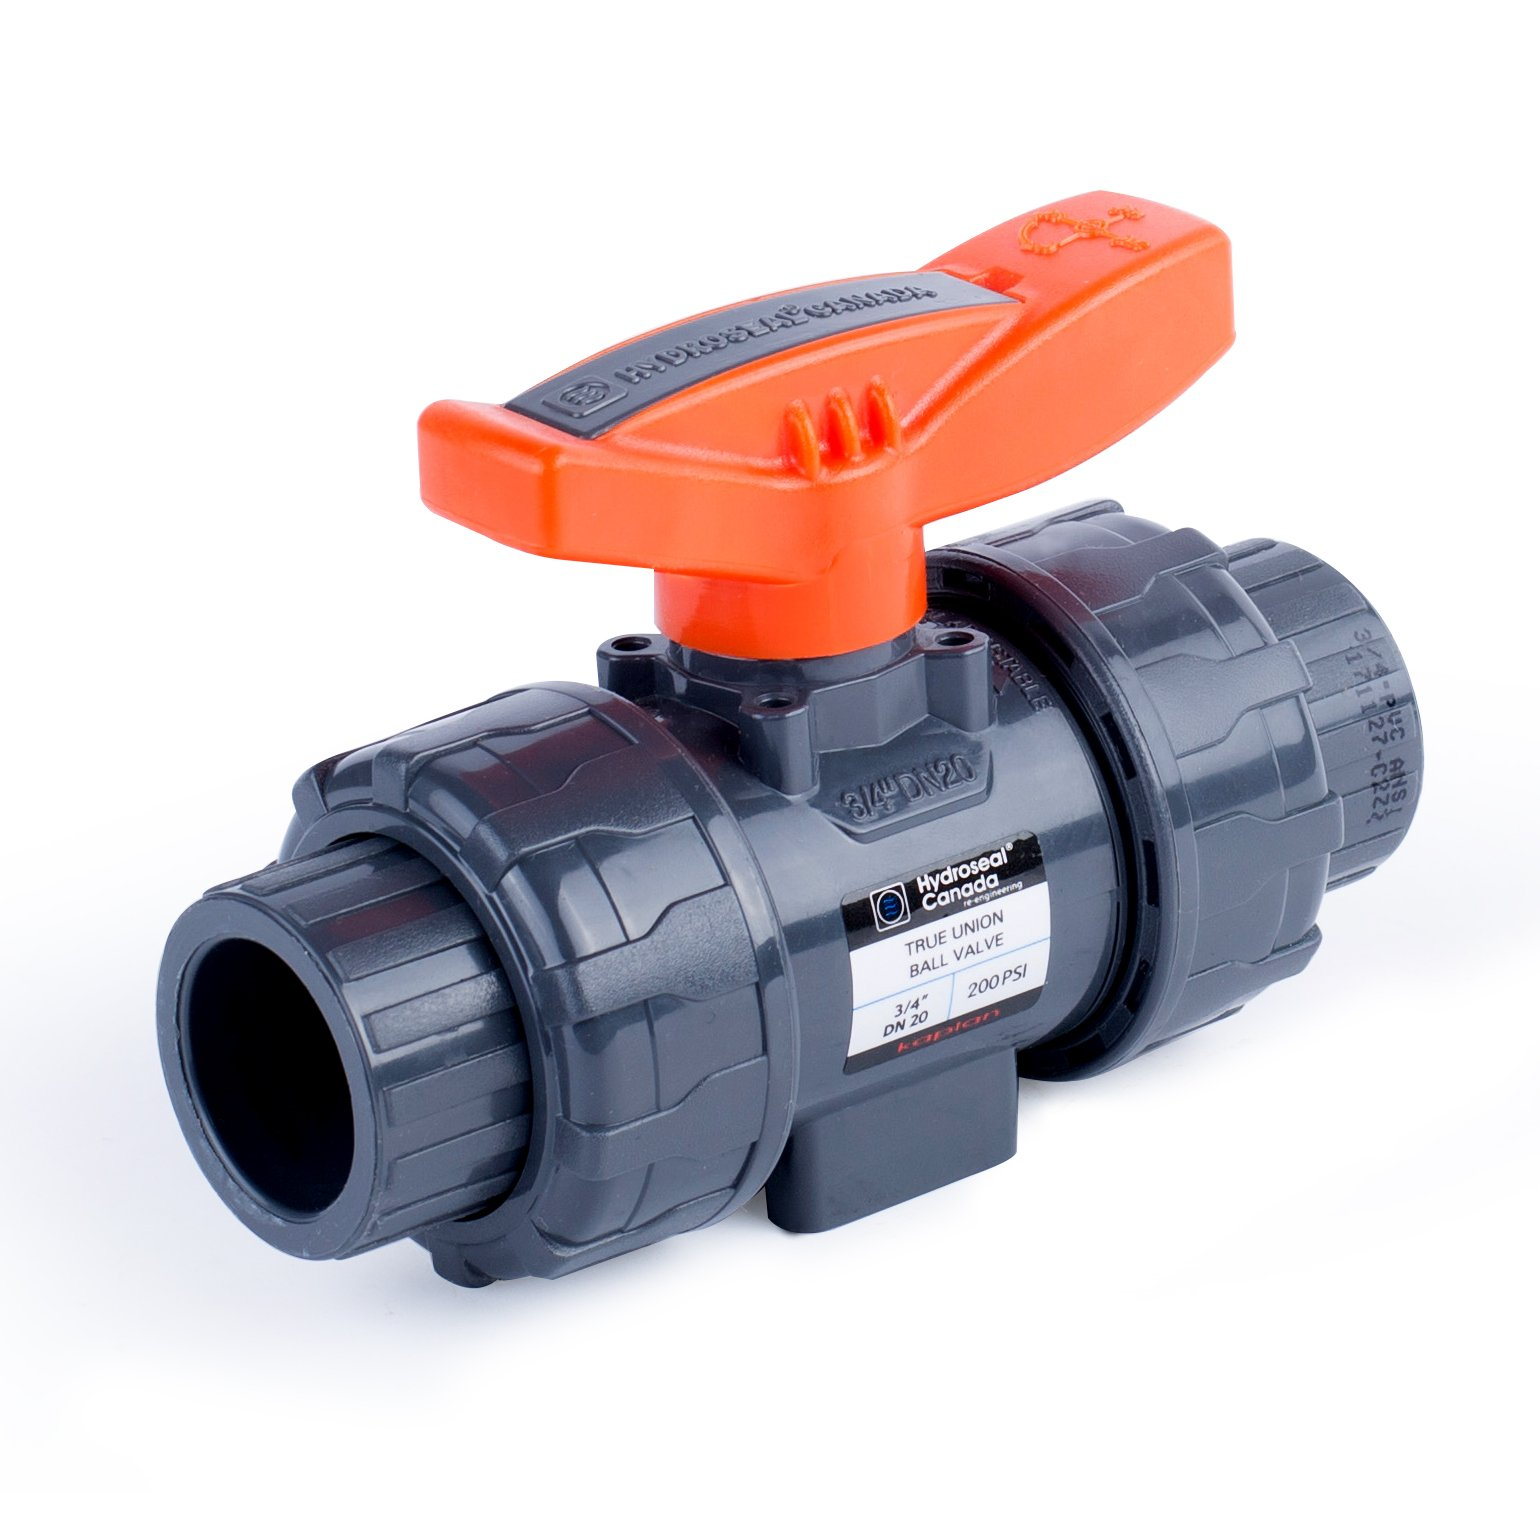 HYDROSEAL Kaplan 3/4'' PVC True Union Ball Valve with Full Port, ASTM F1970, EPDM O-Rings and Reversible PTFE Seats, Rated at 200 PSI @73F, Gray, 3/4 inch Socket (3/4'') by Hydroseal (Image #2)